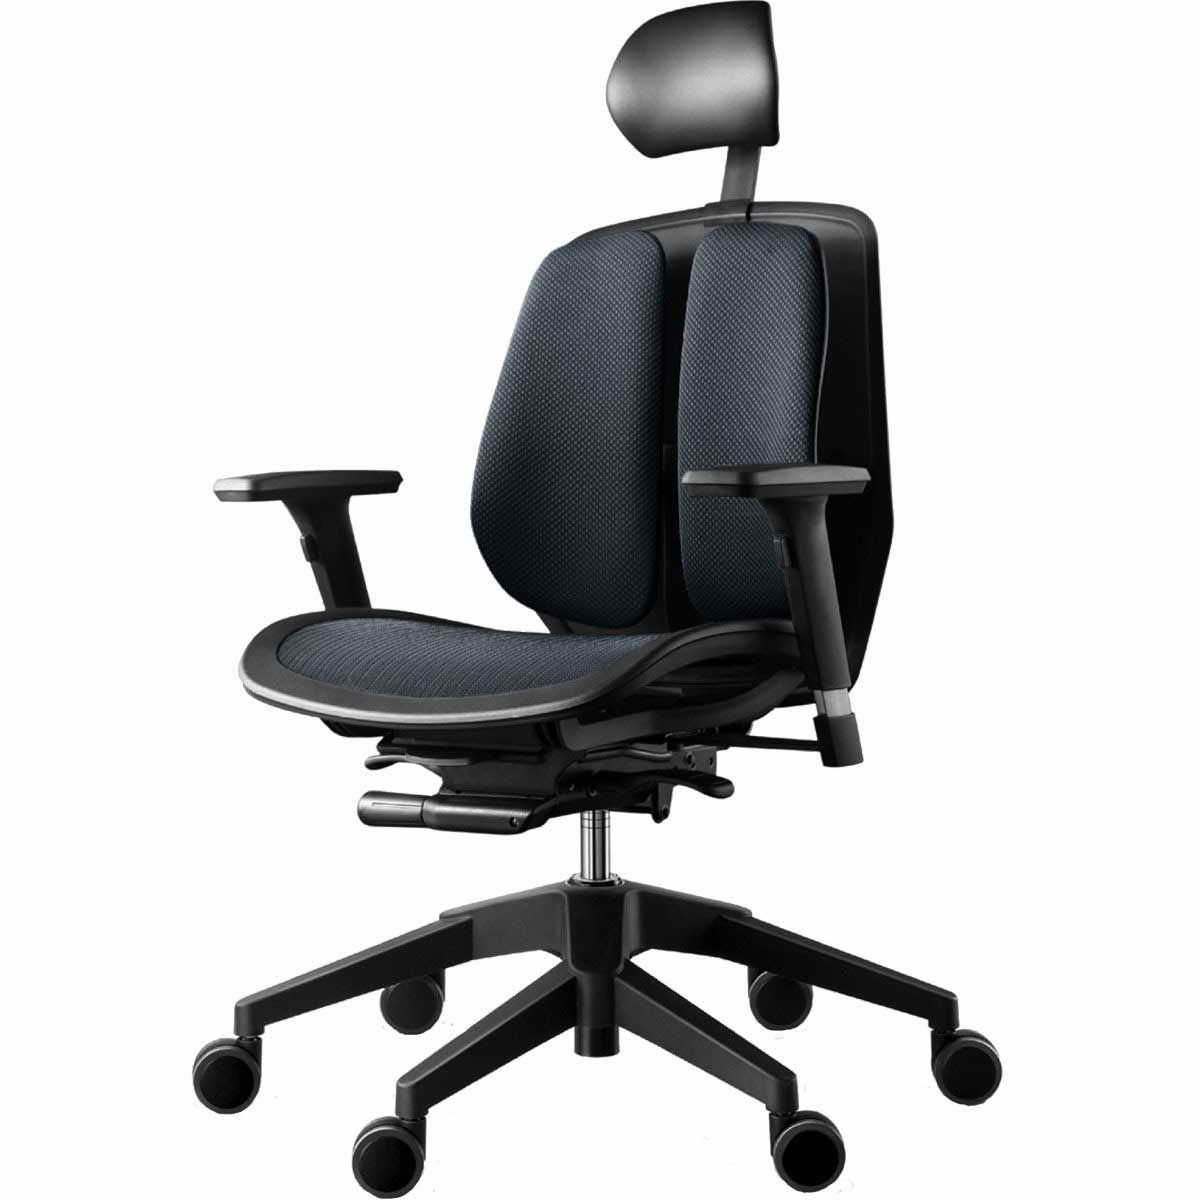 Neck attachment for office chair